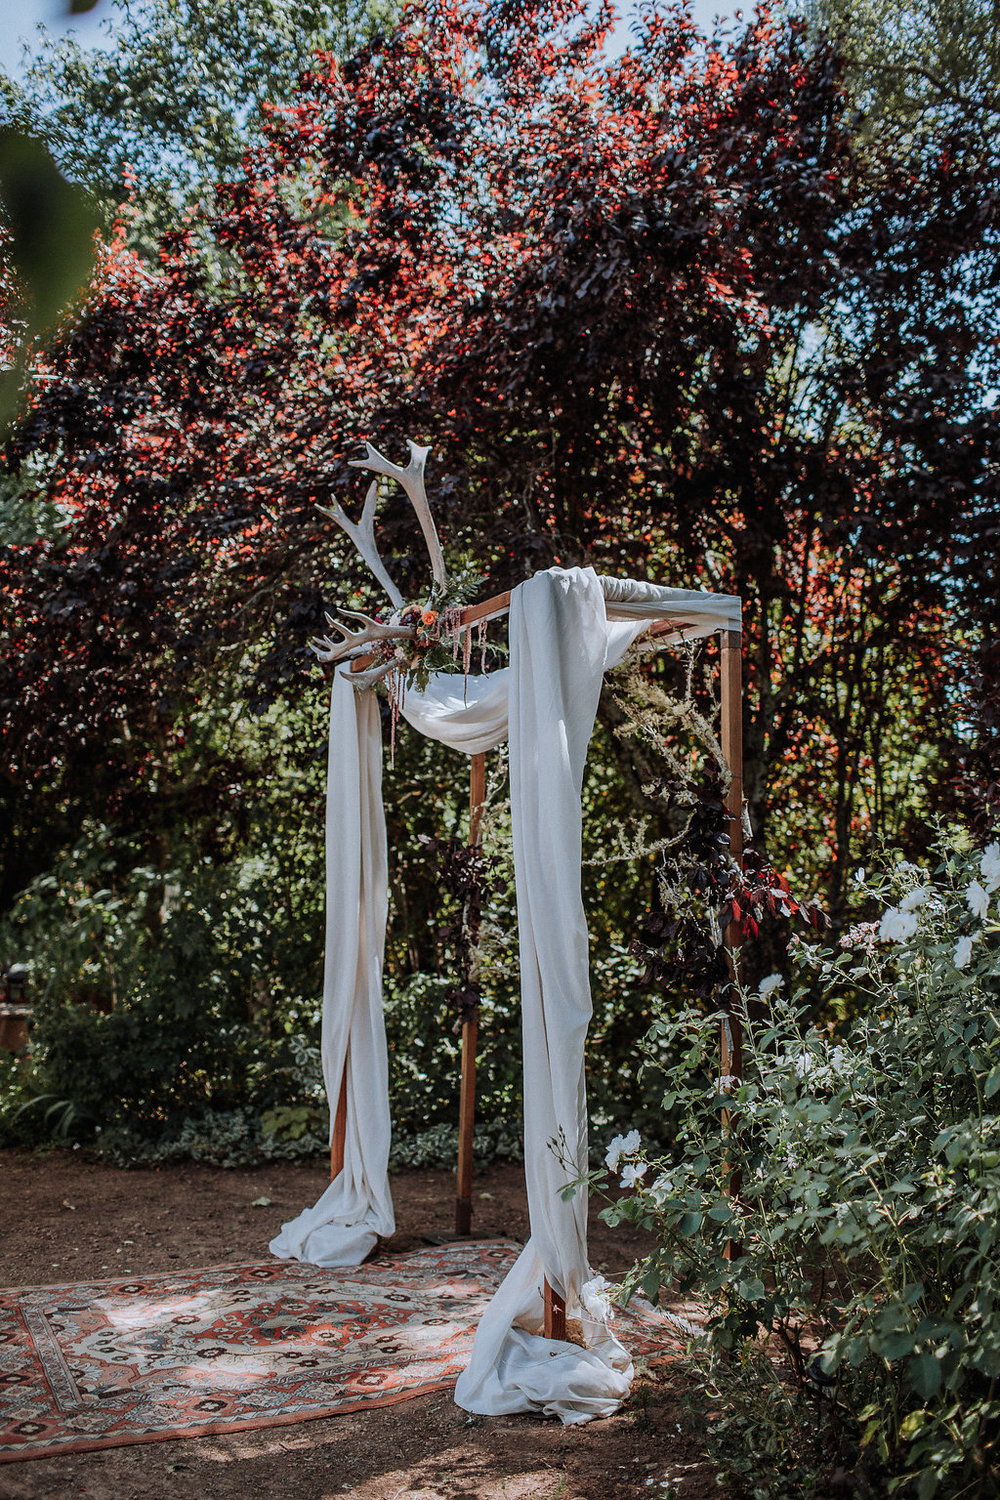 Our most sacred space. Rowan Farm wedding in the garden we harvest so many of our materials from year round. Ceremony structure for Camille's sister using antlers found on the property and sonoma grown flowers. Photo by  Gretchen Gause .